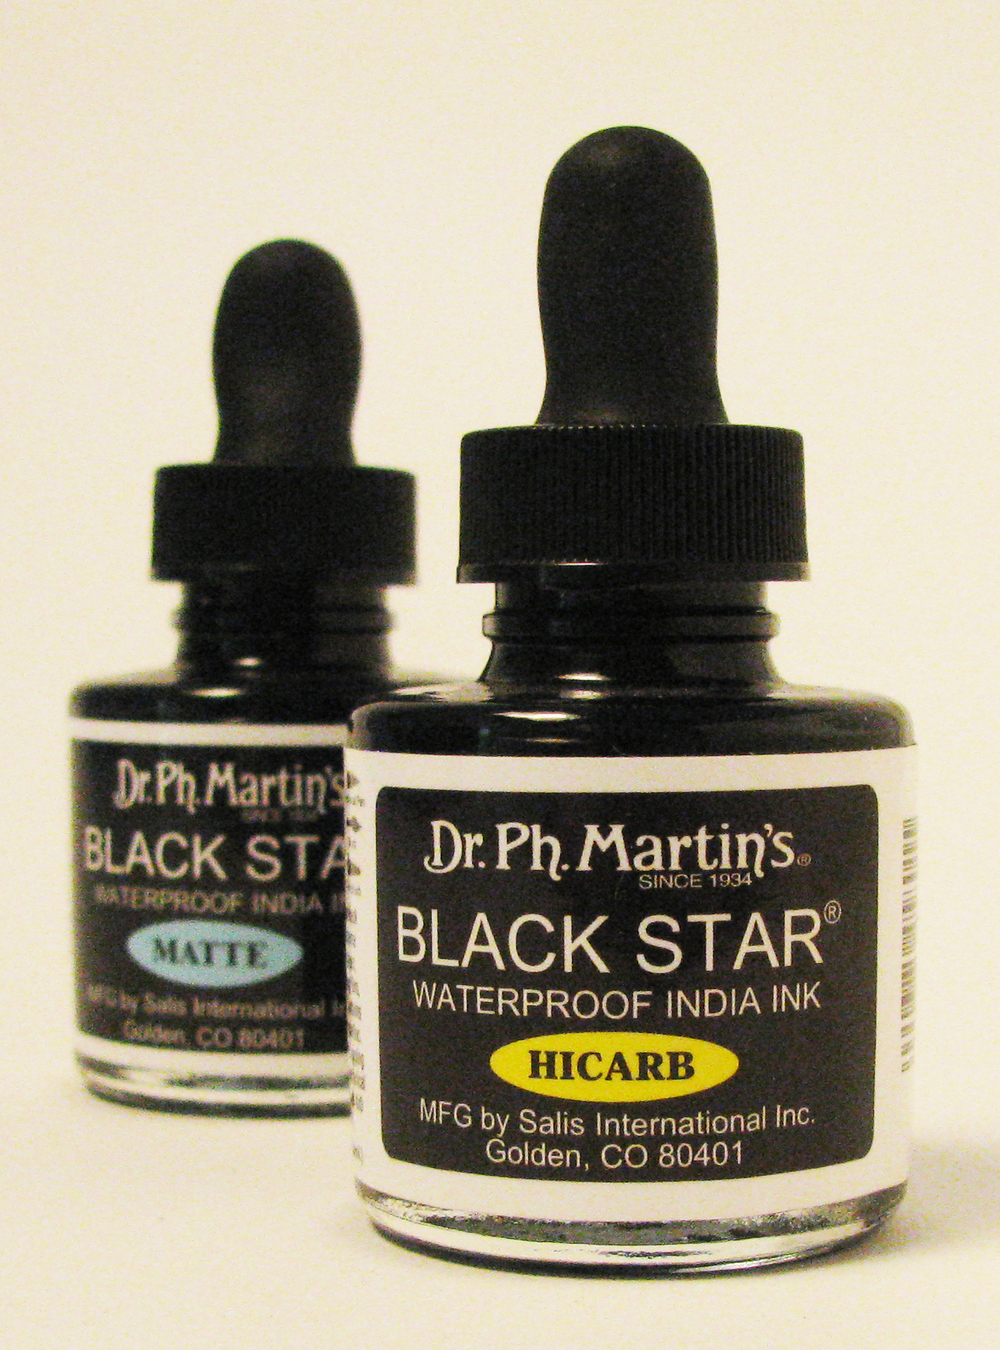 - DR. PH. MARTIN'S BLACK STAR INDIA INK -